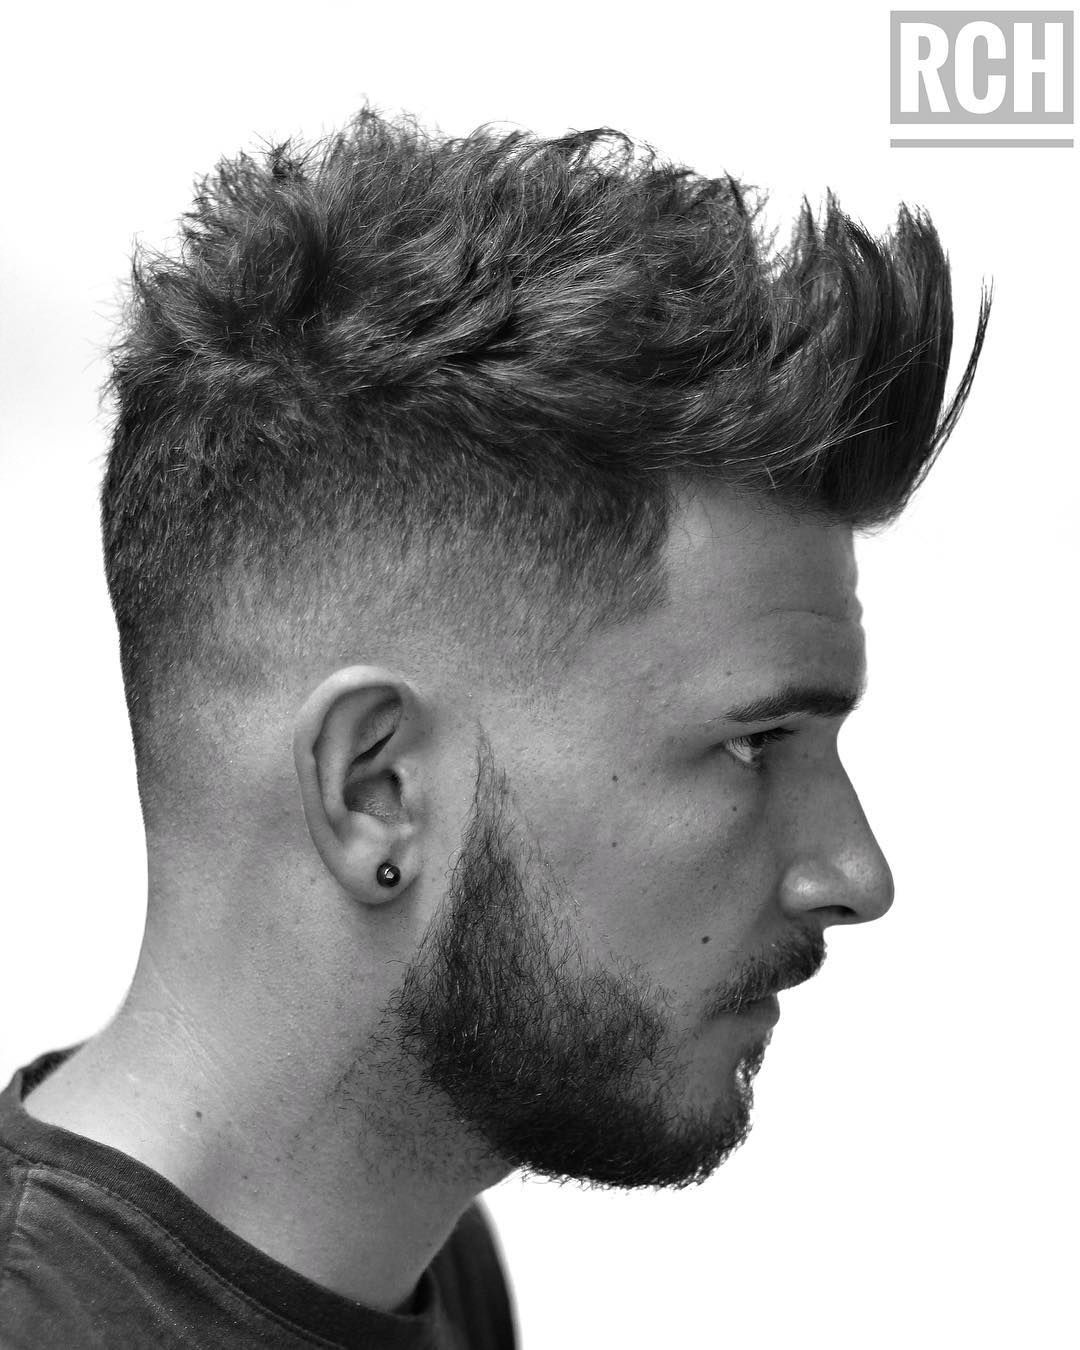 New Hairstyles Awesome 100 New Men's Hairstyles For 2018 Top Picks  Pinterest